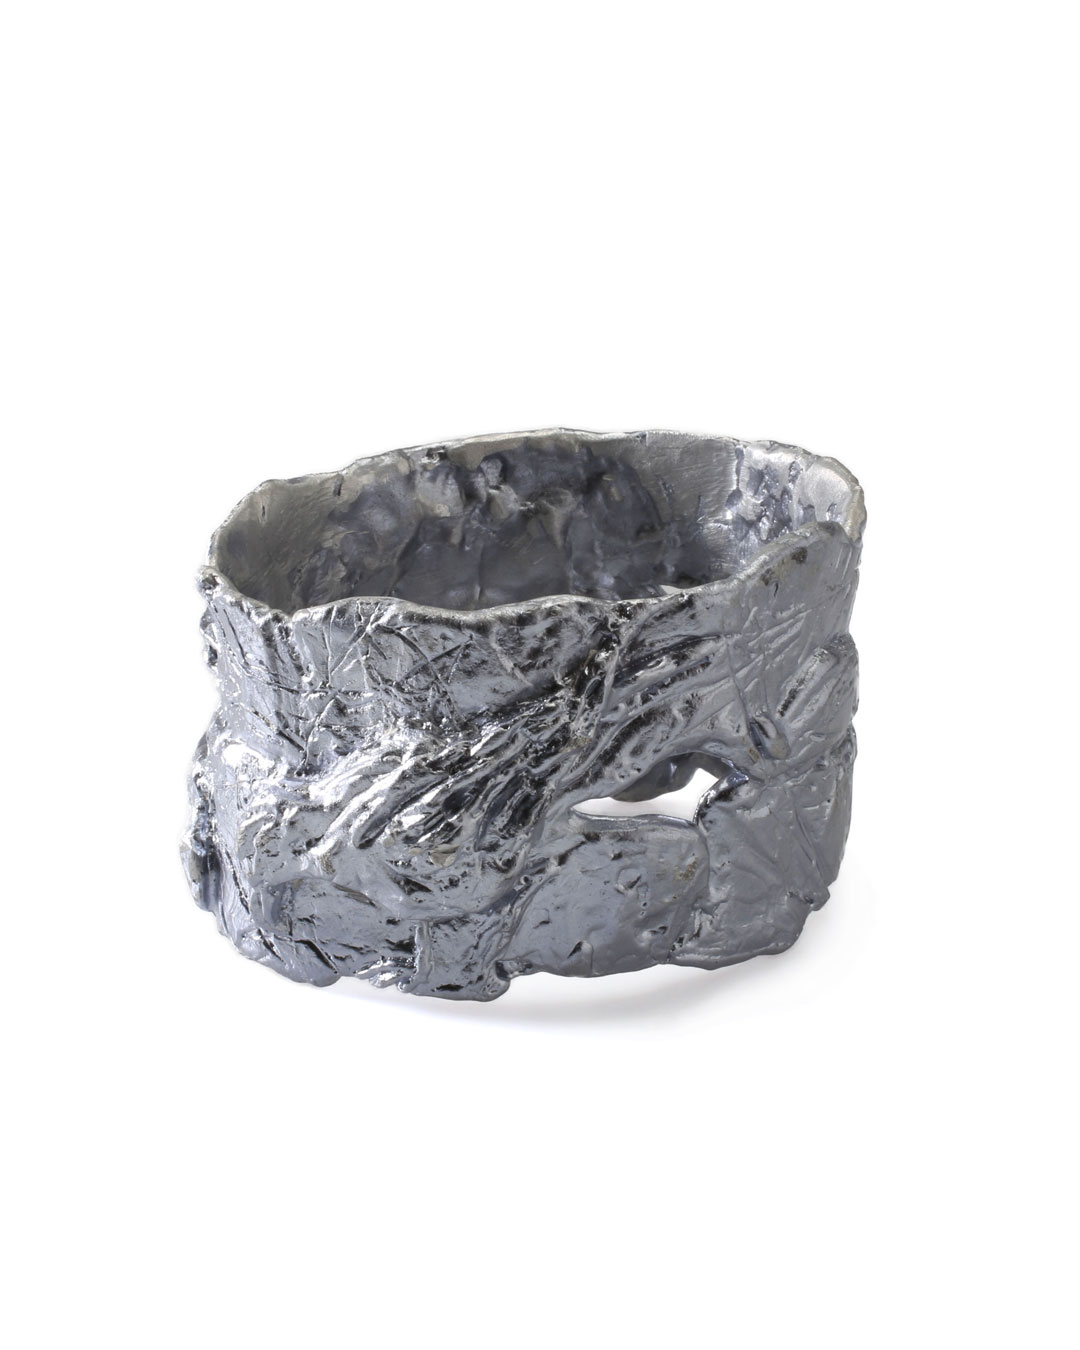 Juliane Brandes, untitled, 2013, bracelet; aluminium-manganese, 75 x 50 mm, €1100